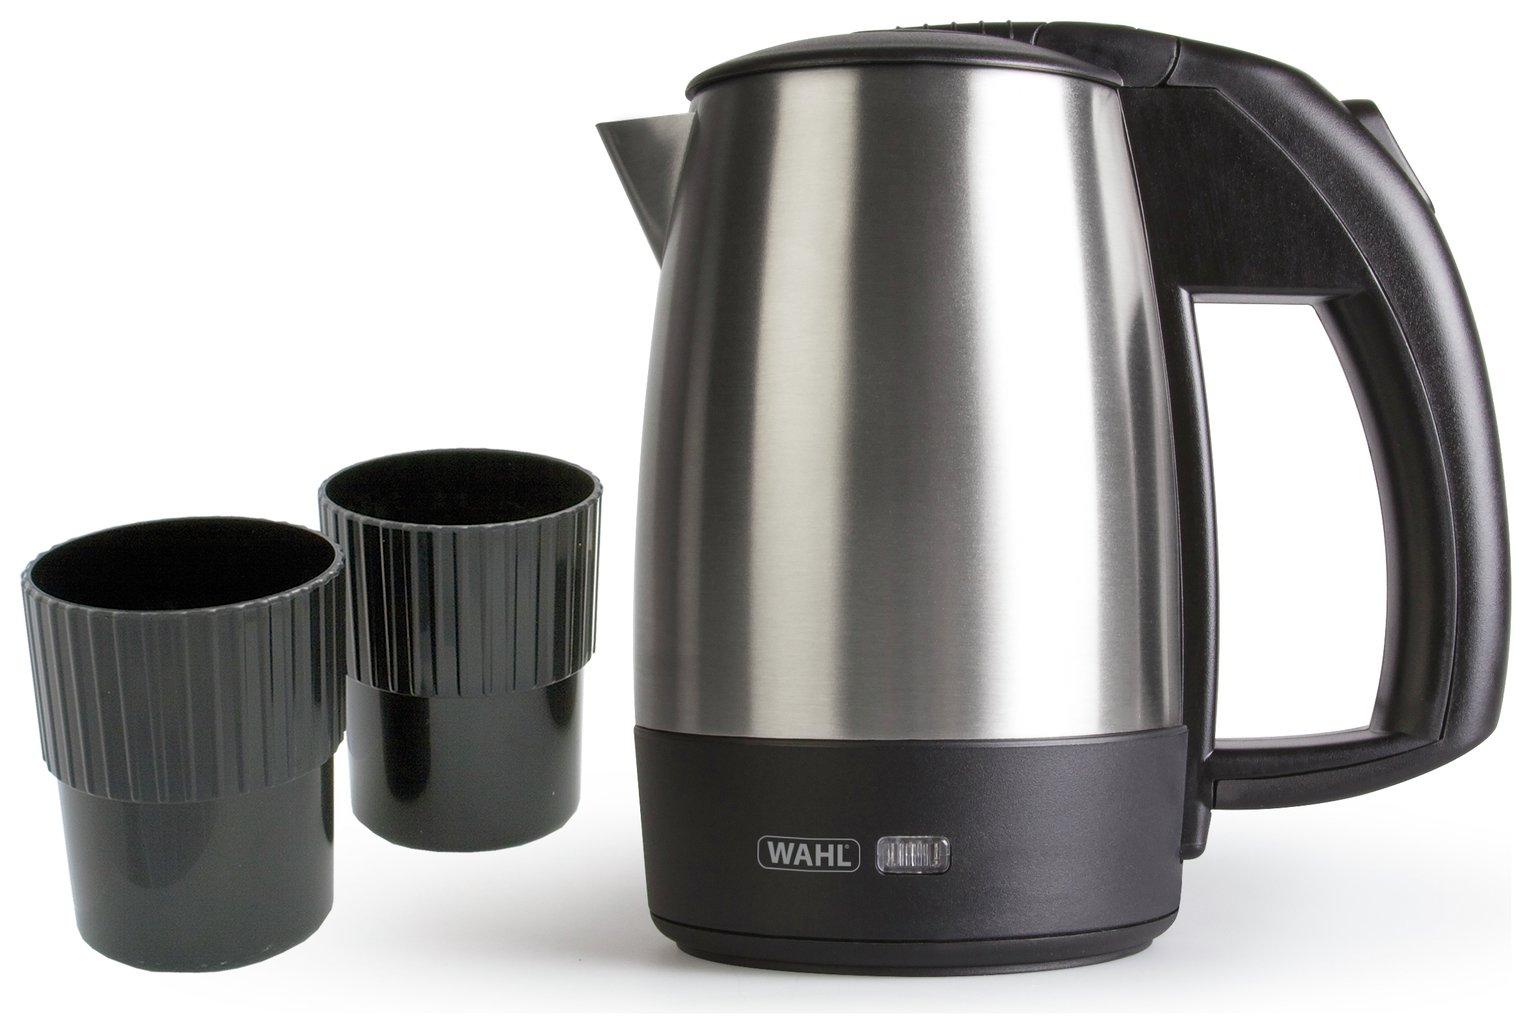 Image of Wahl - Kettle - Travel - Kettle - Stainless Steel